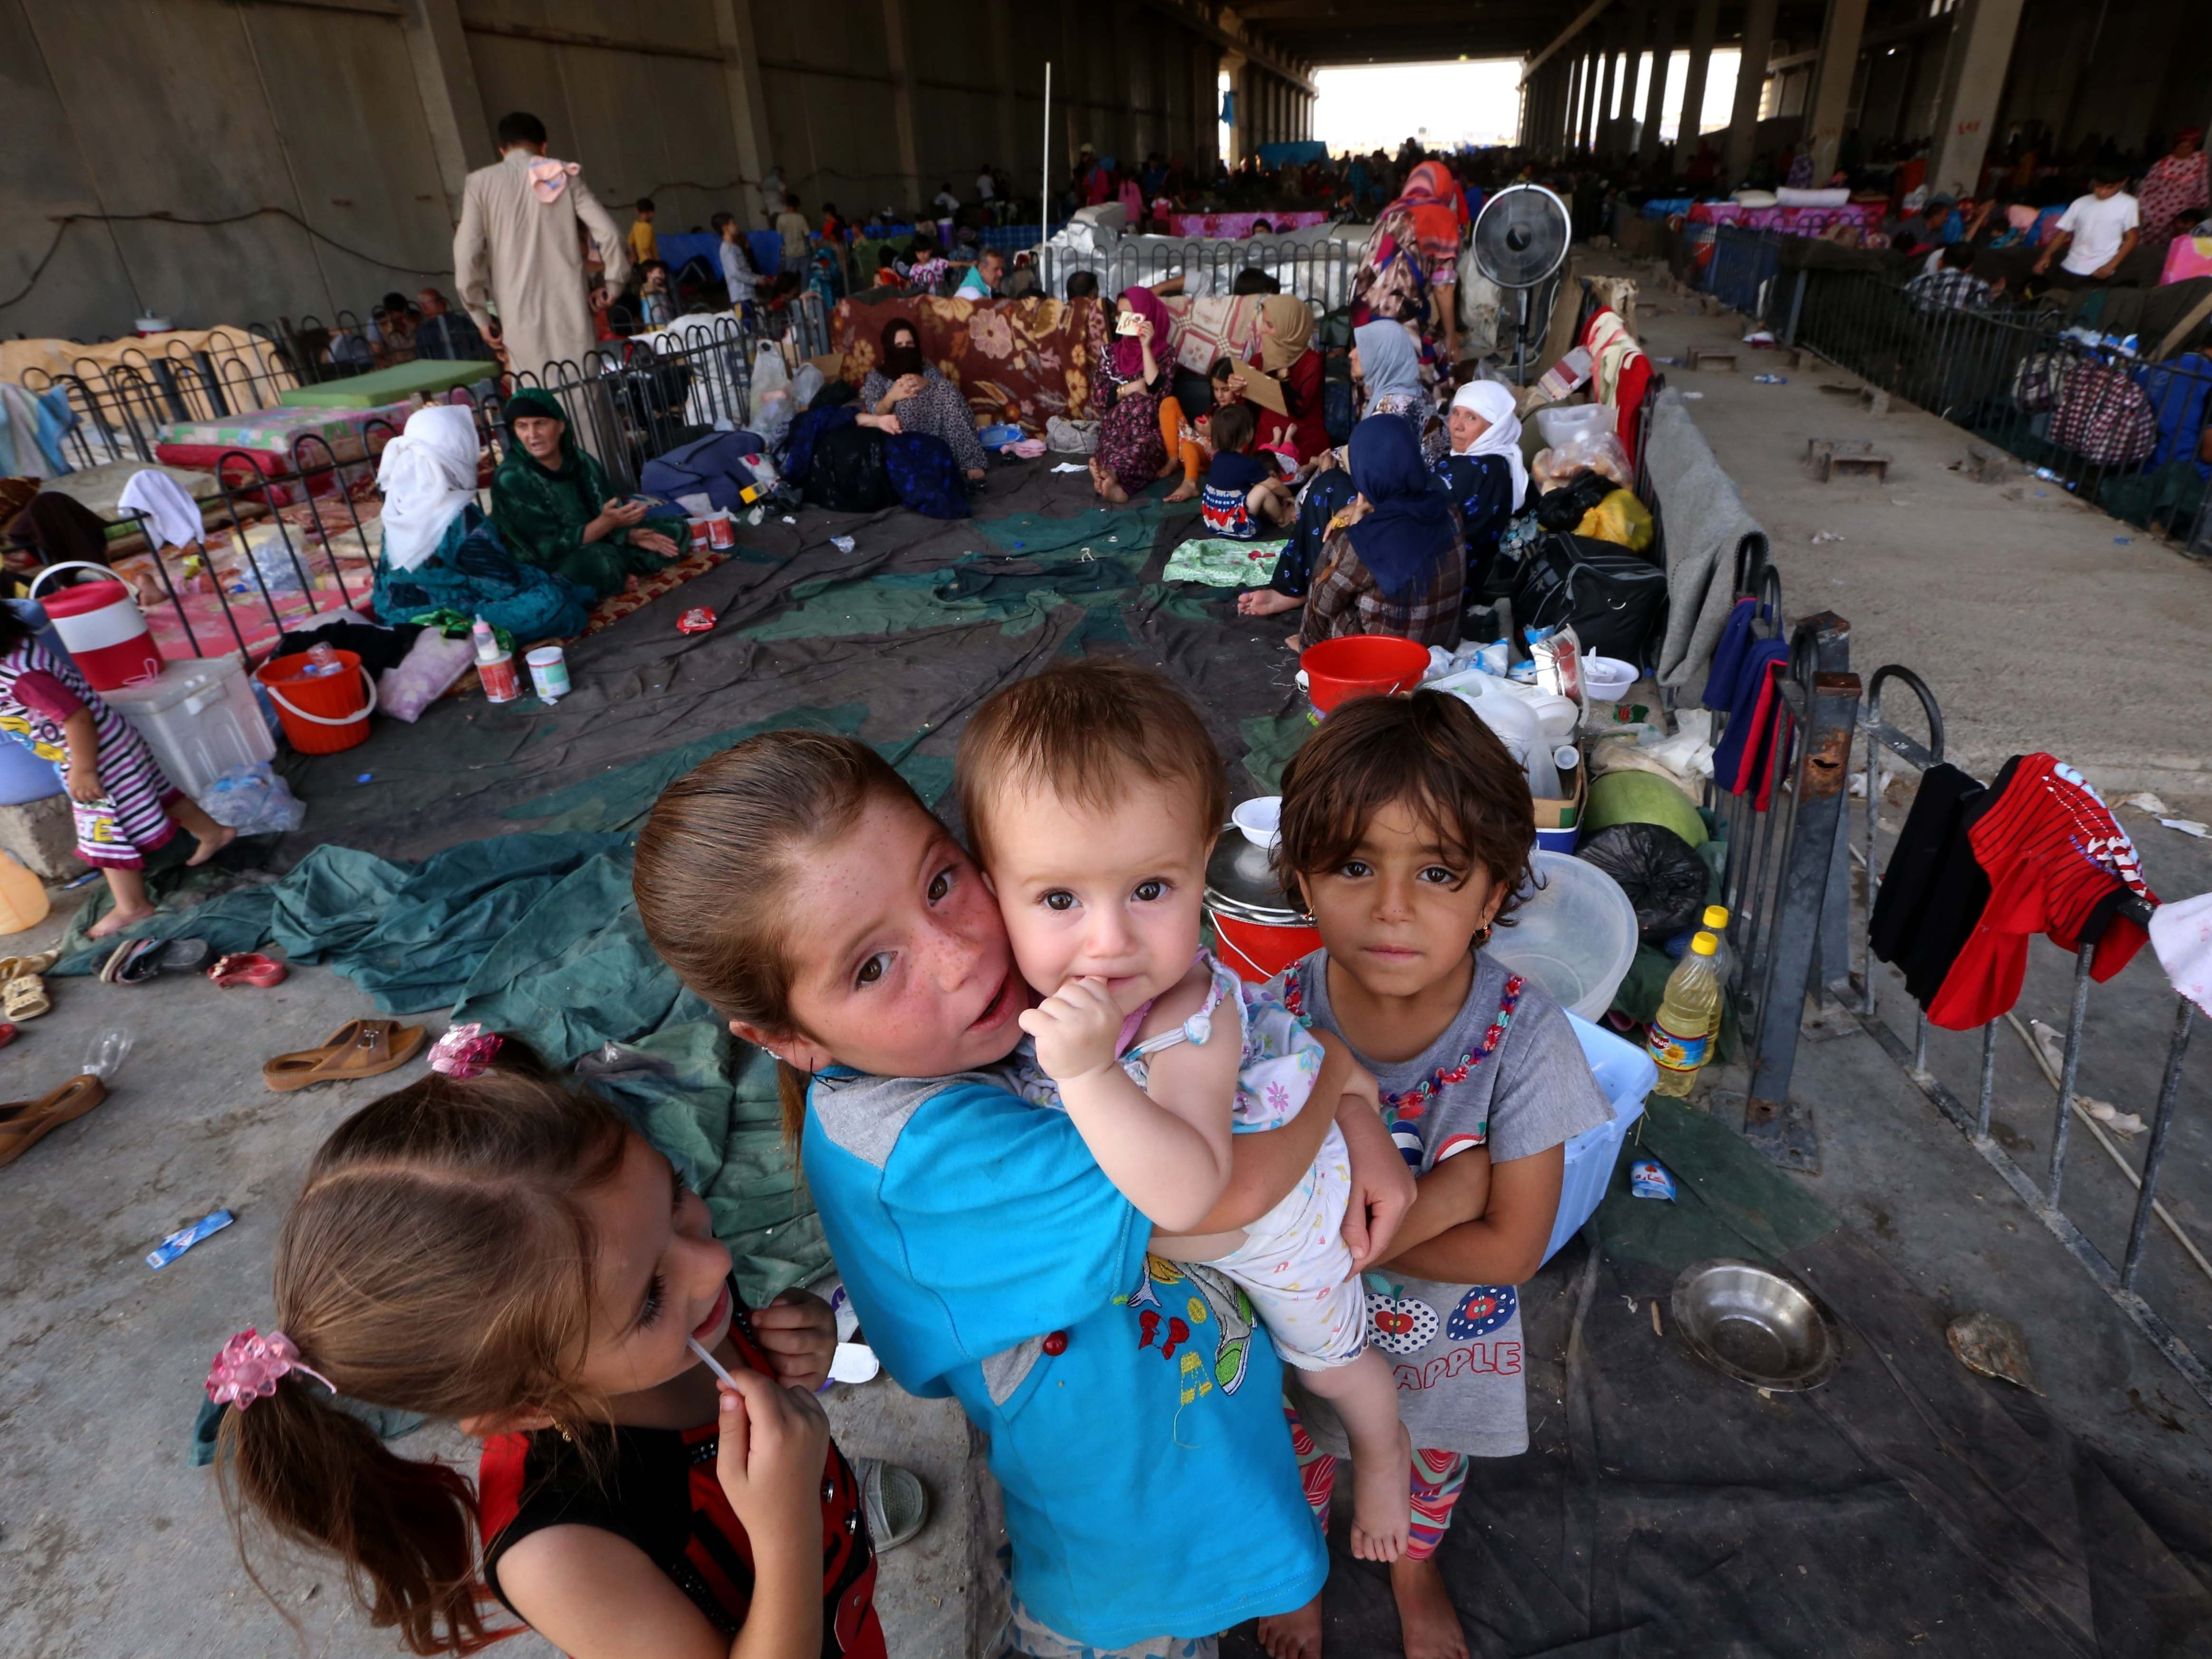 Iraqis Displaced By ISIS Face Another Threat: Winter